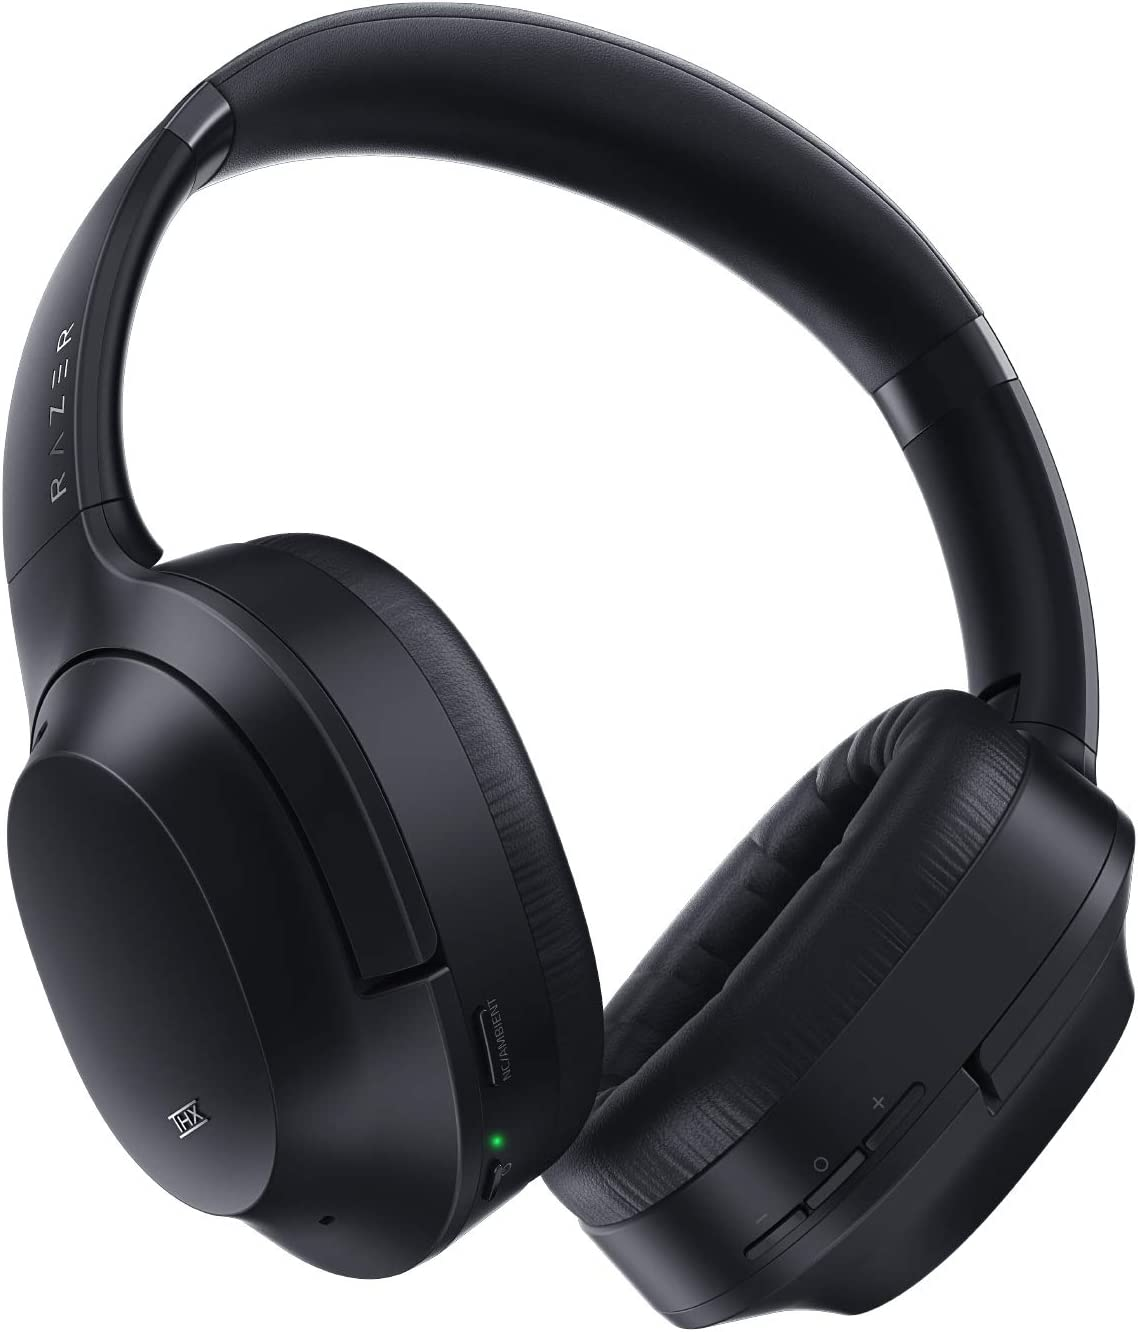 Razer Opus Active Noise Cancelling ANC Wireless Headphones